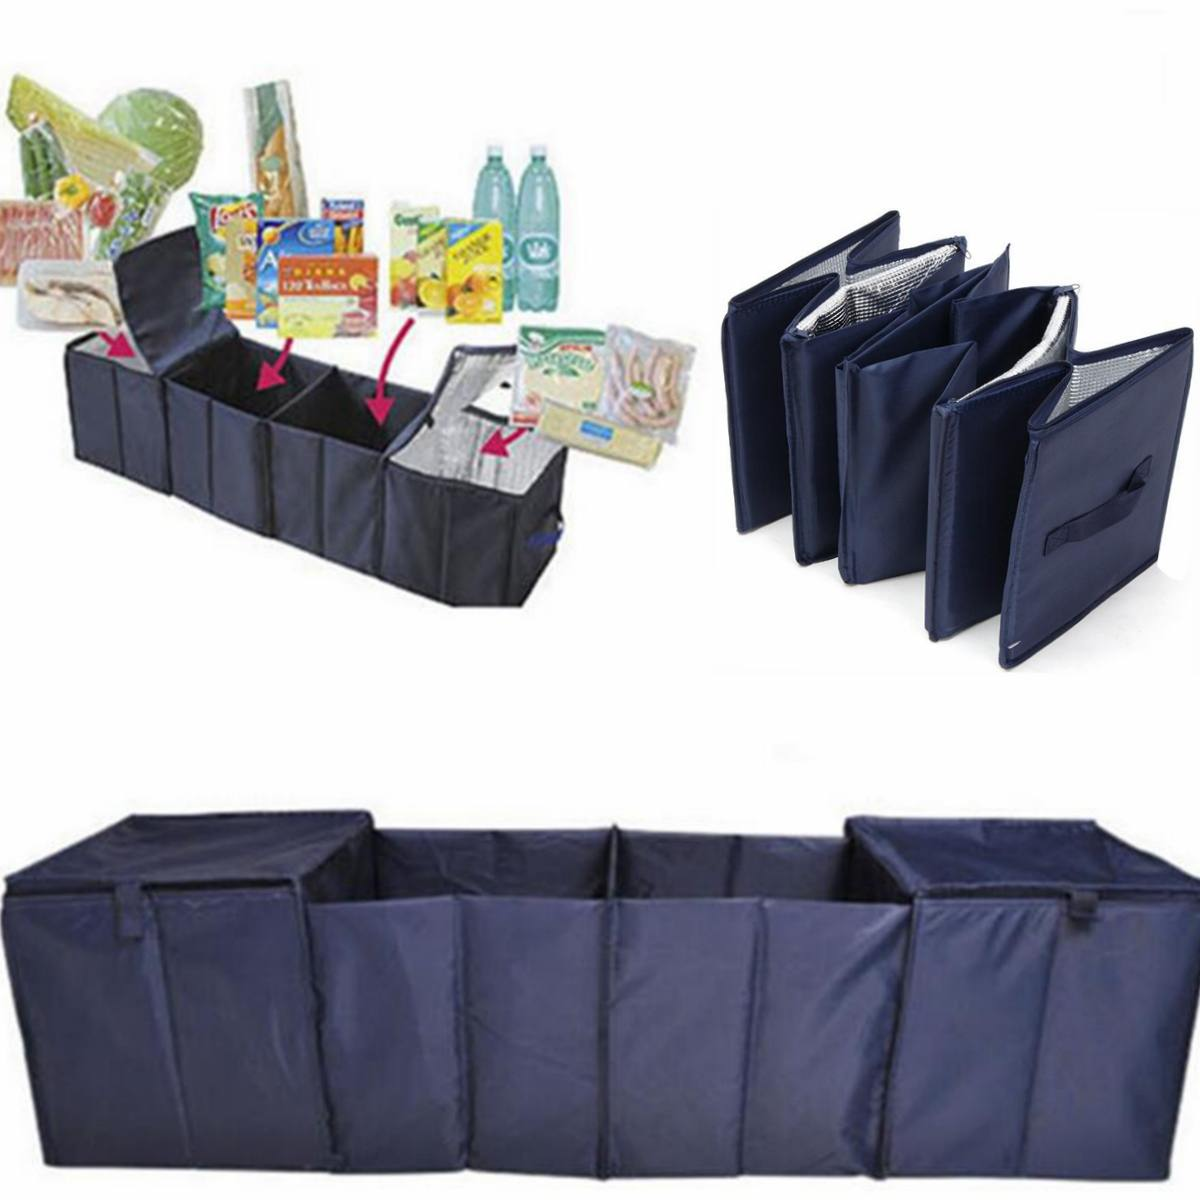 Foldable Car Trunk Boot Storage 4 Grid Collapsible Organizer Oxford Cloth+Aluminum Foil+PVC Dark Blue With 2 Cooler Bags